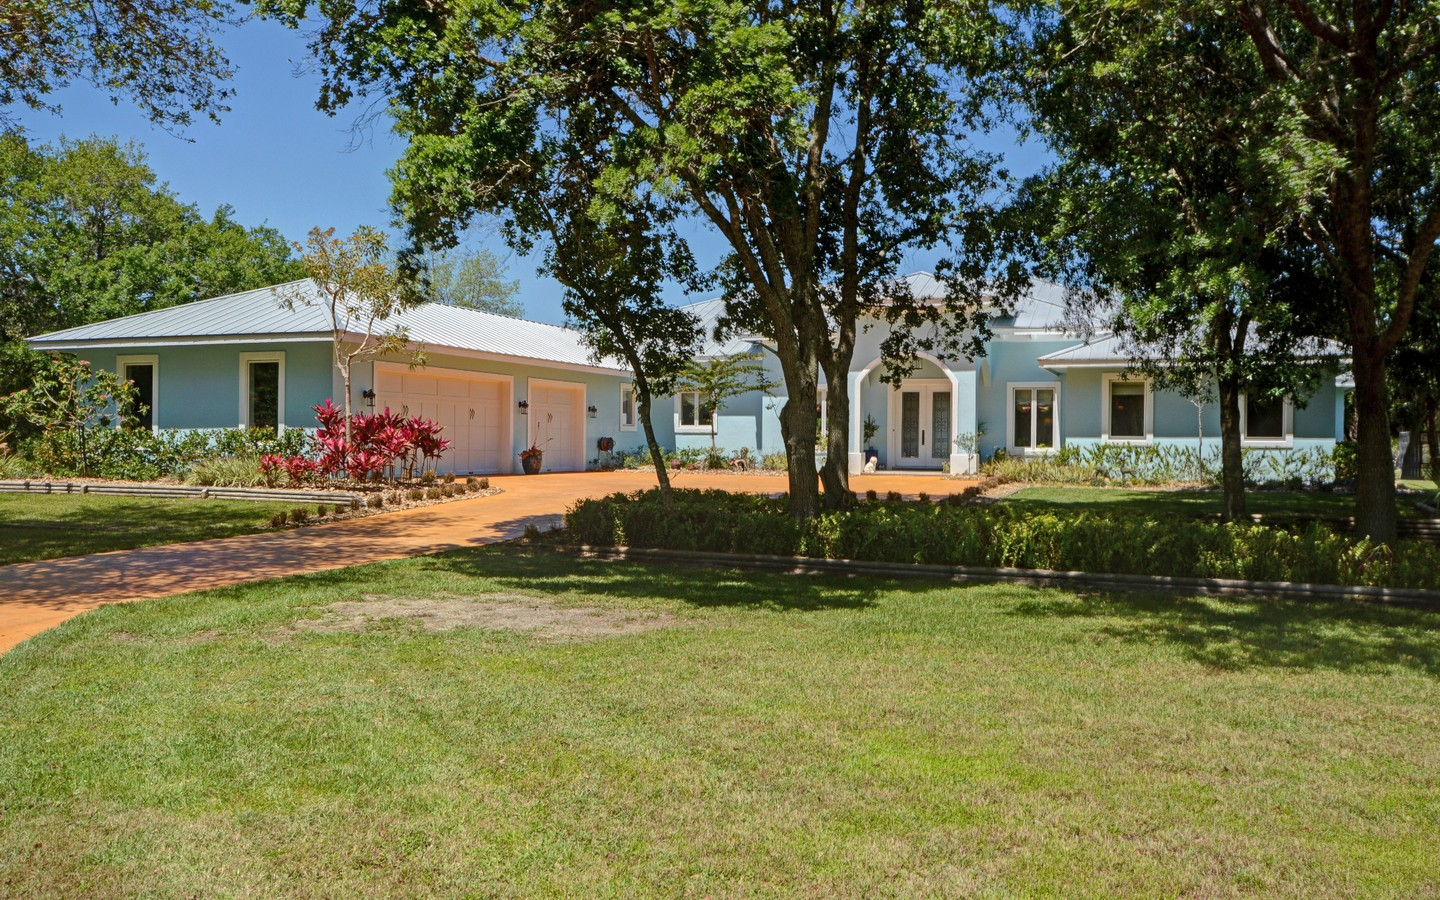 Single Family Home for Sale at Exceptional Country Home on 5 Acres 6150 8th St Vero Beach, Florida, 32968 United States